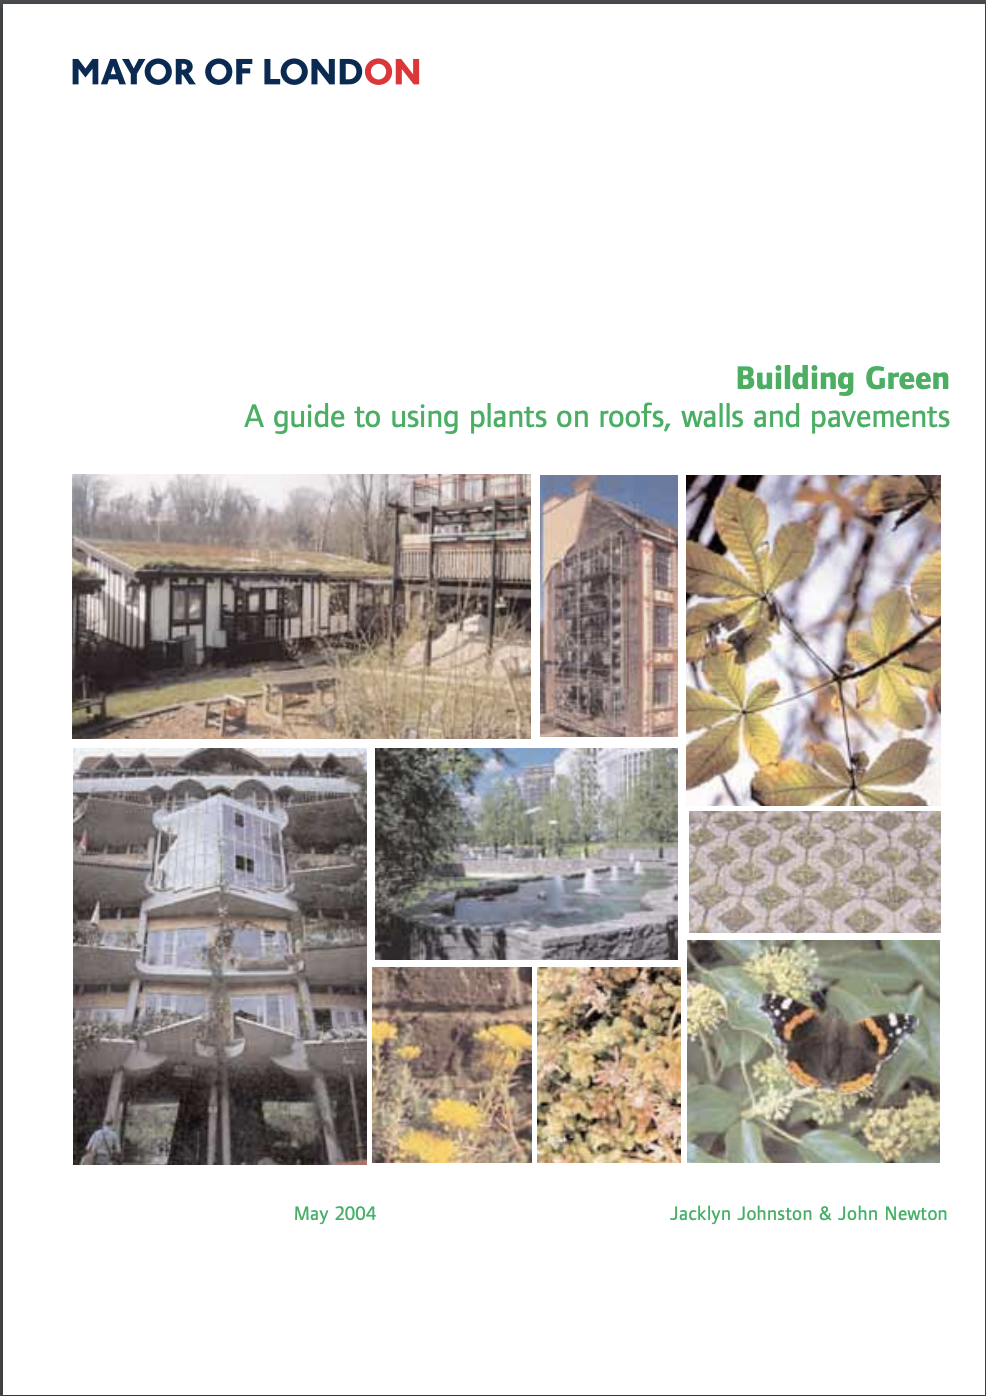 Building Green - a guide to using plants on roofs, walls and pavements